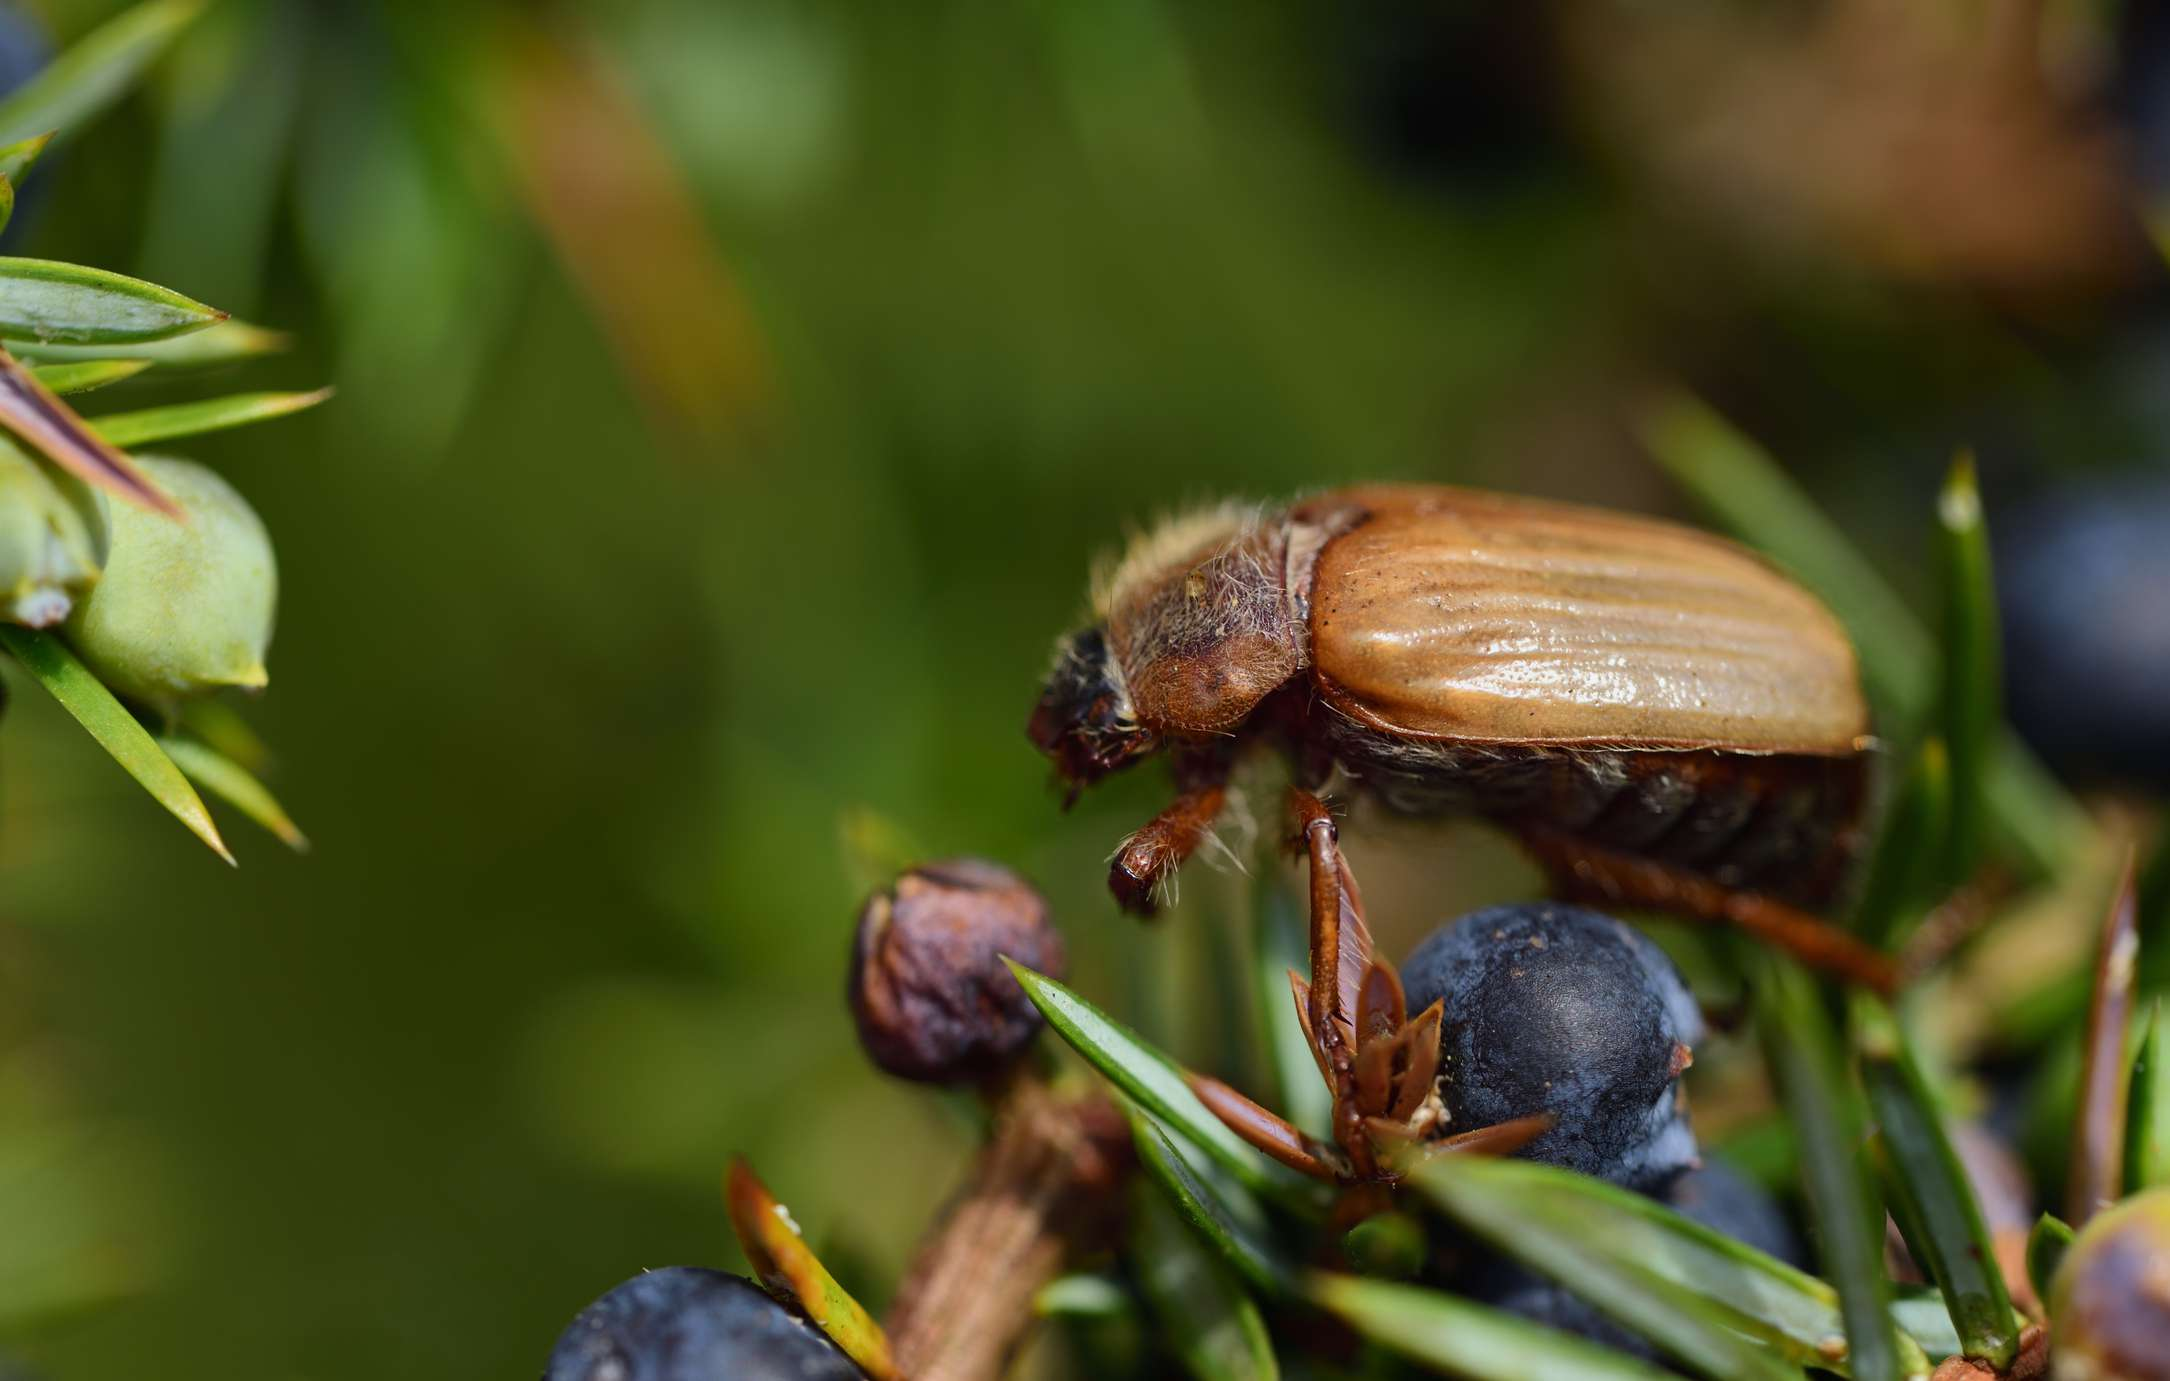 A brown beetle on a juniper bush with berries.